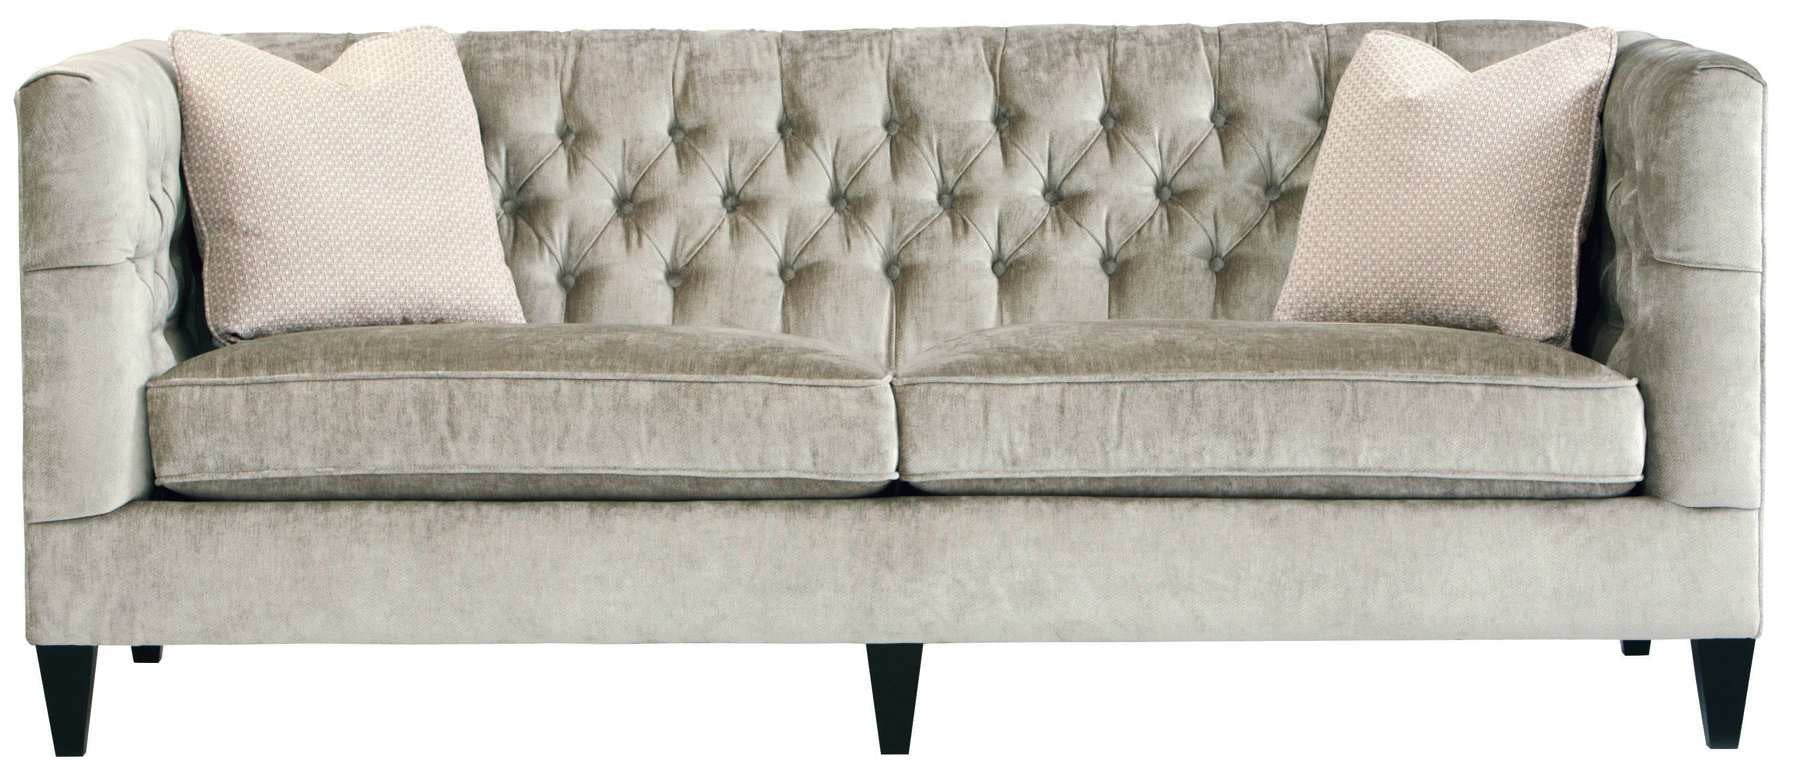 Sofa shown in fabric.